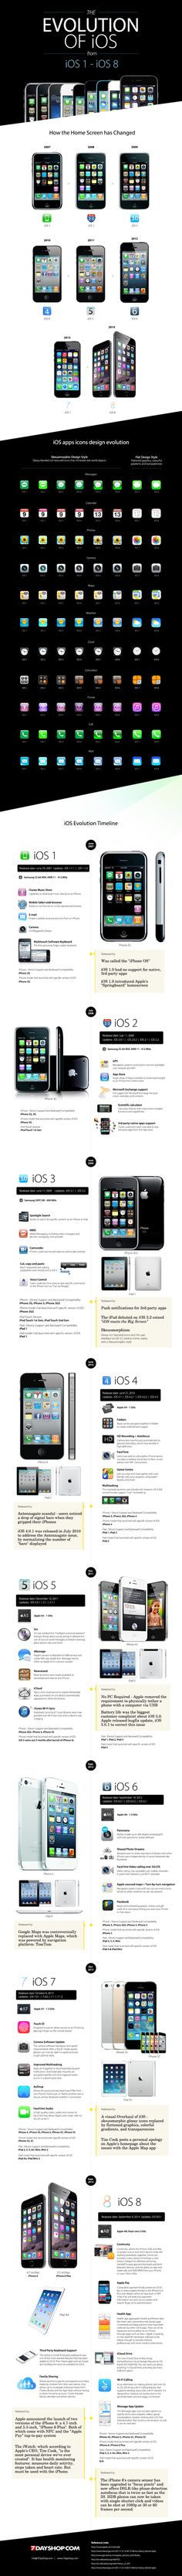 The Evolution of iOS from iOS 1 - iOS 8 infographic